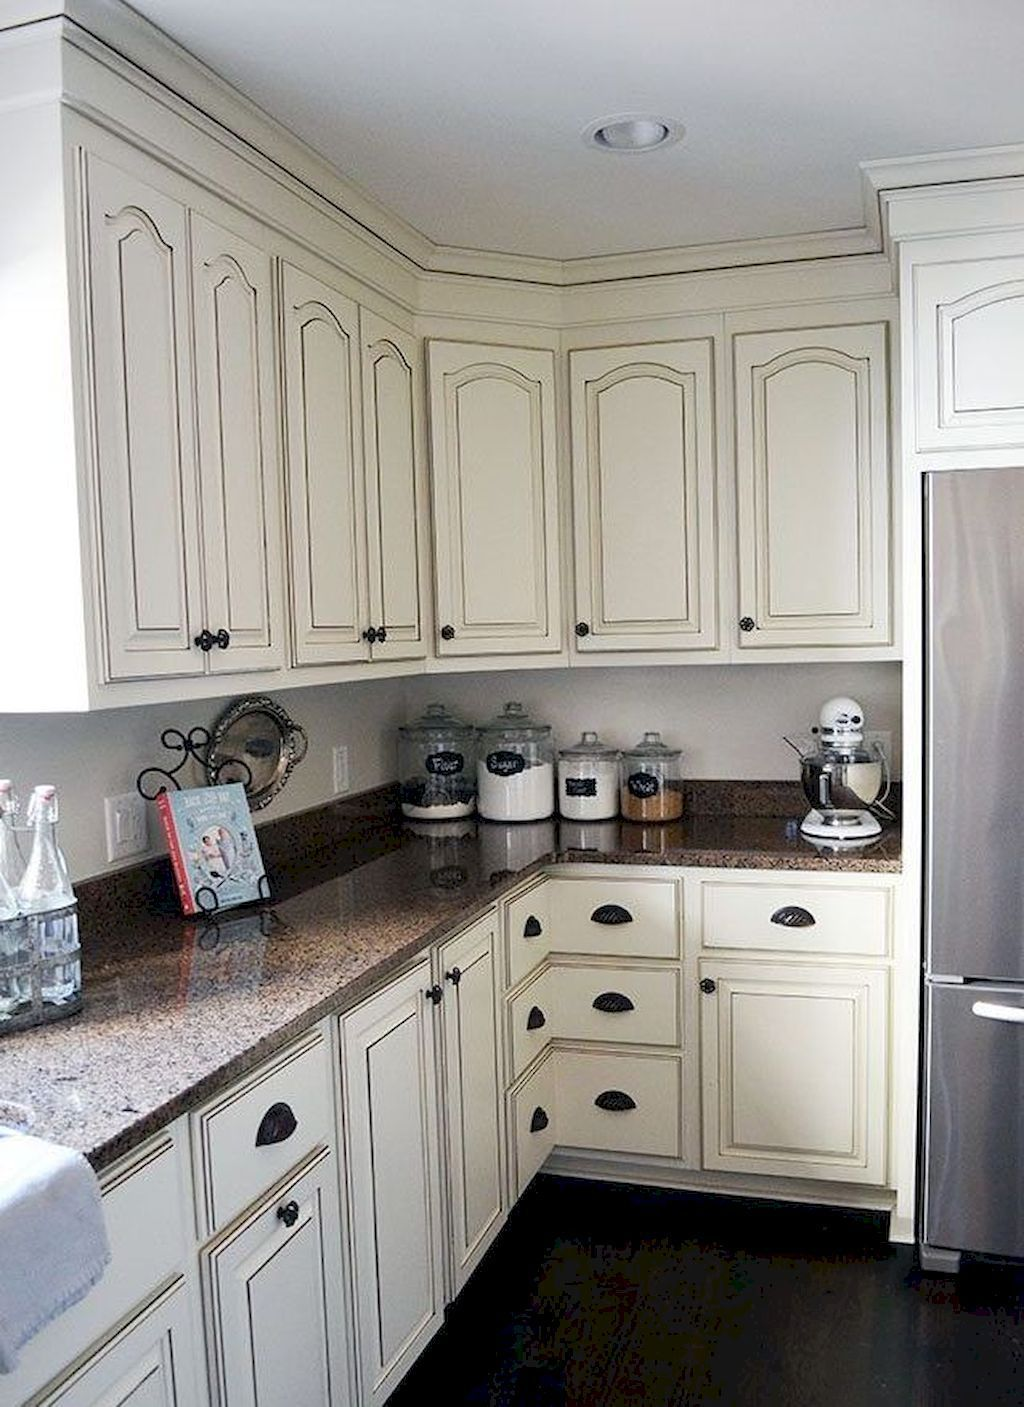 44 Awezome Farmhouse Kitchen Cabinet Makeover Design Ideas French Country Kitchen Cabinets Kitchen Cabinet Design Glazed Kitchen Cabinets